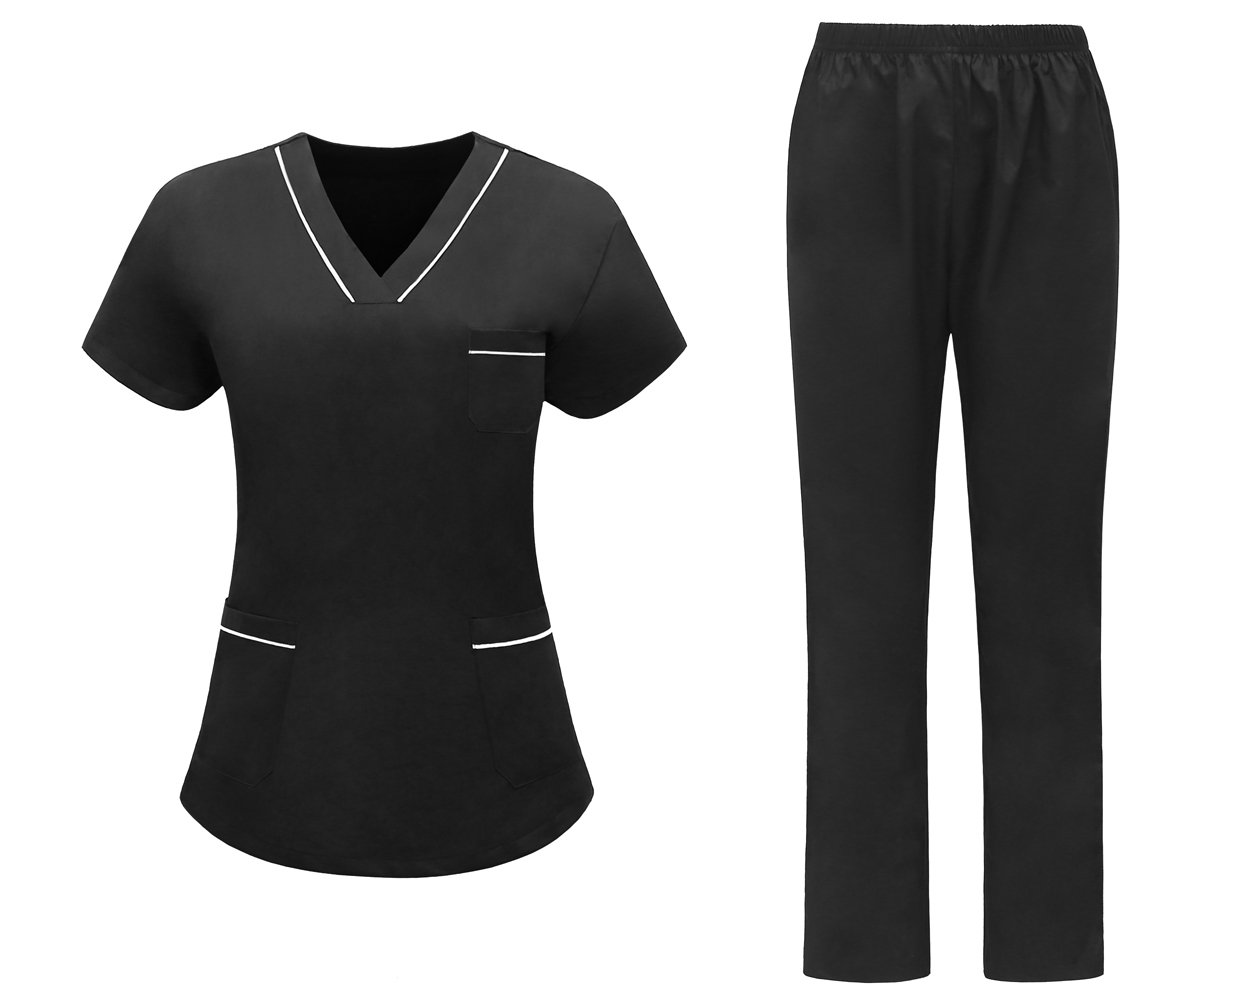 AURNEW Women's Quality Scrub Sets: Slim Fit Medical Uniforms for Women (Black, M)